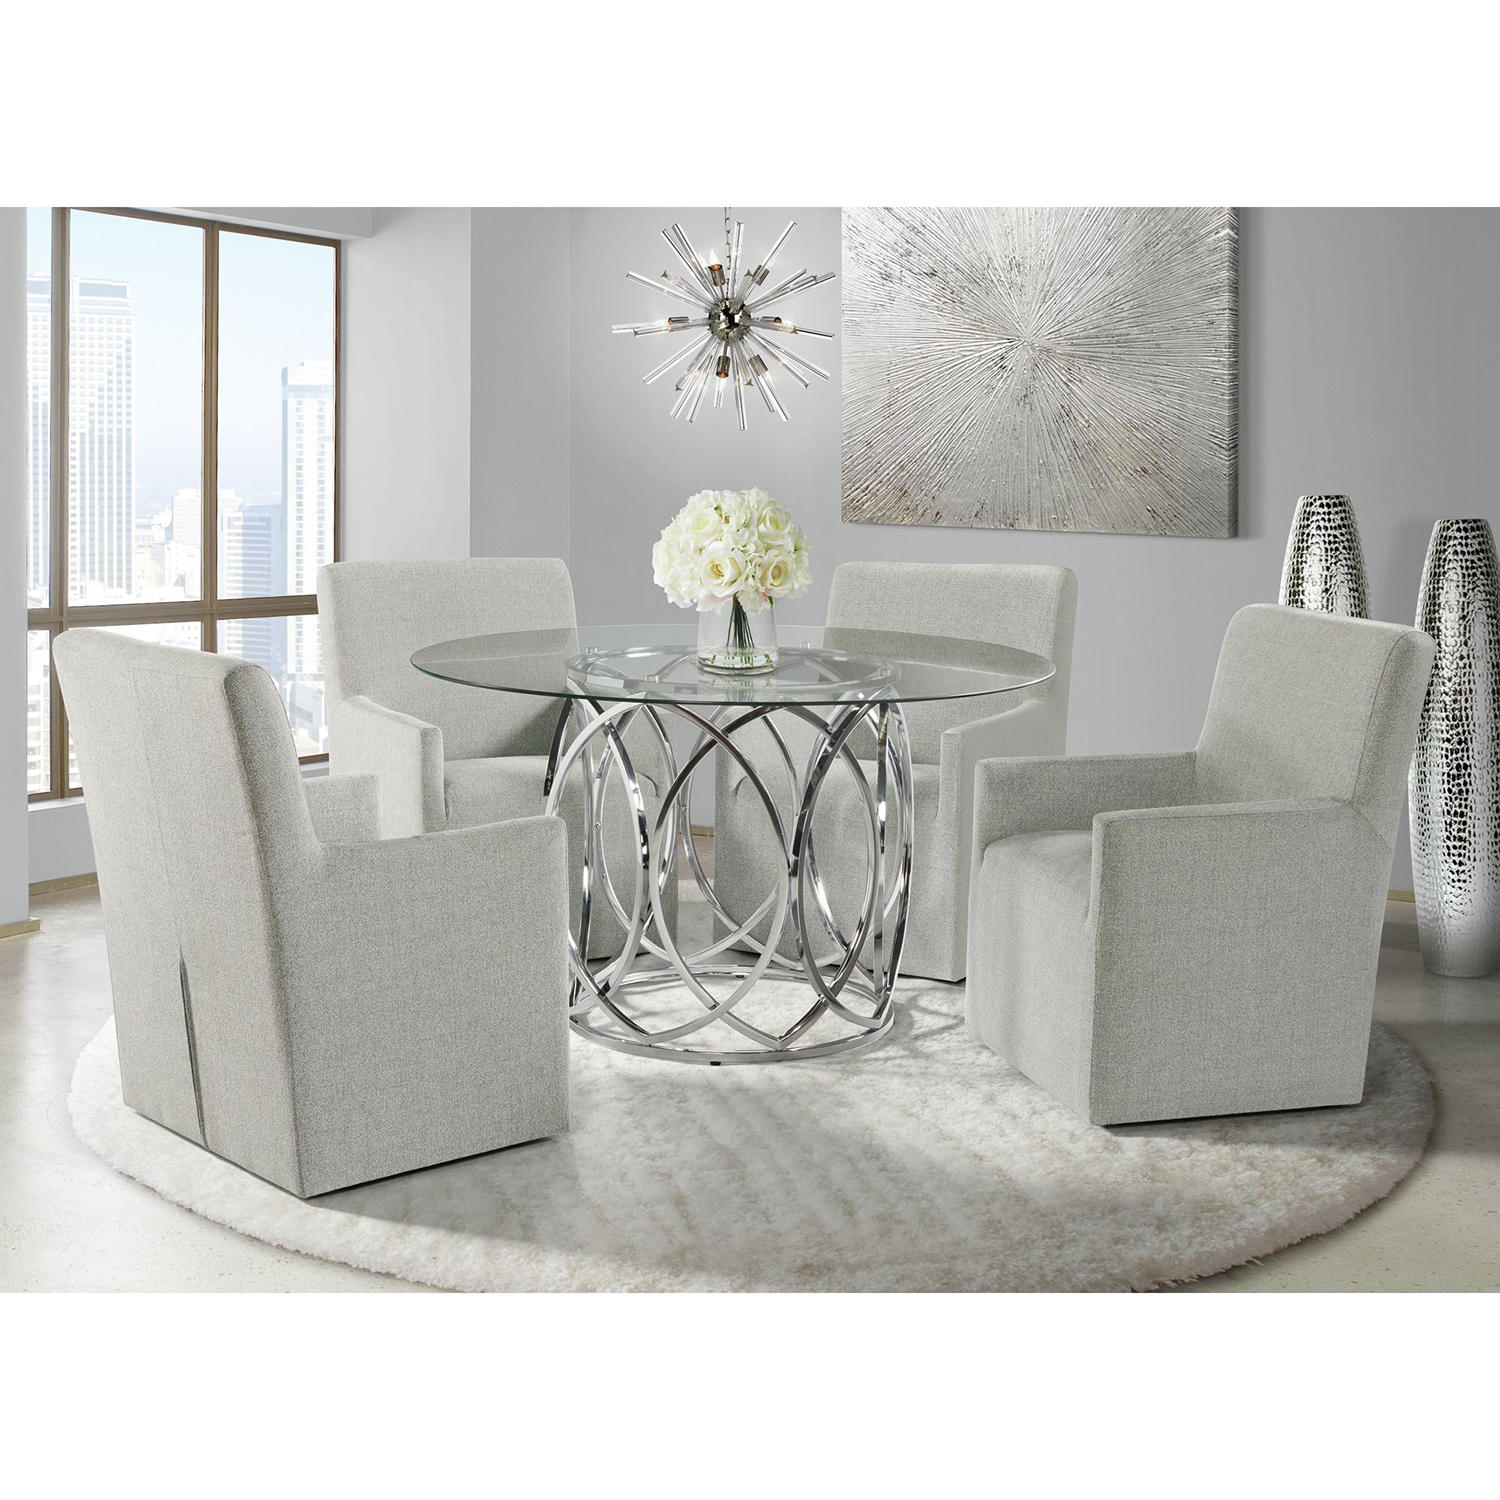 Society Den Marcy Standard Height 5-Piece Dining Set